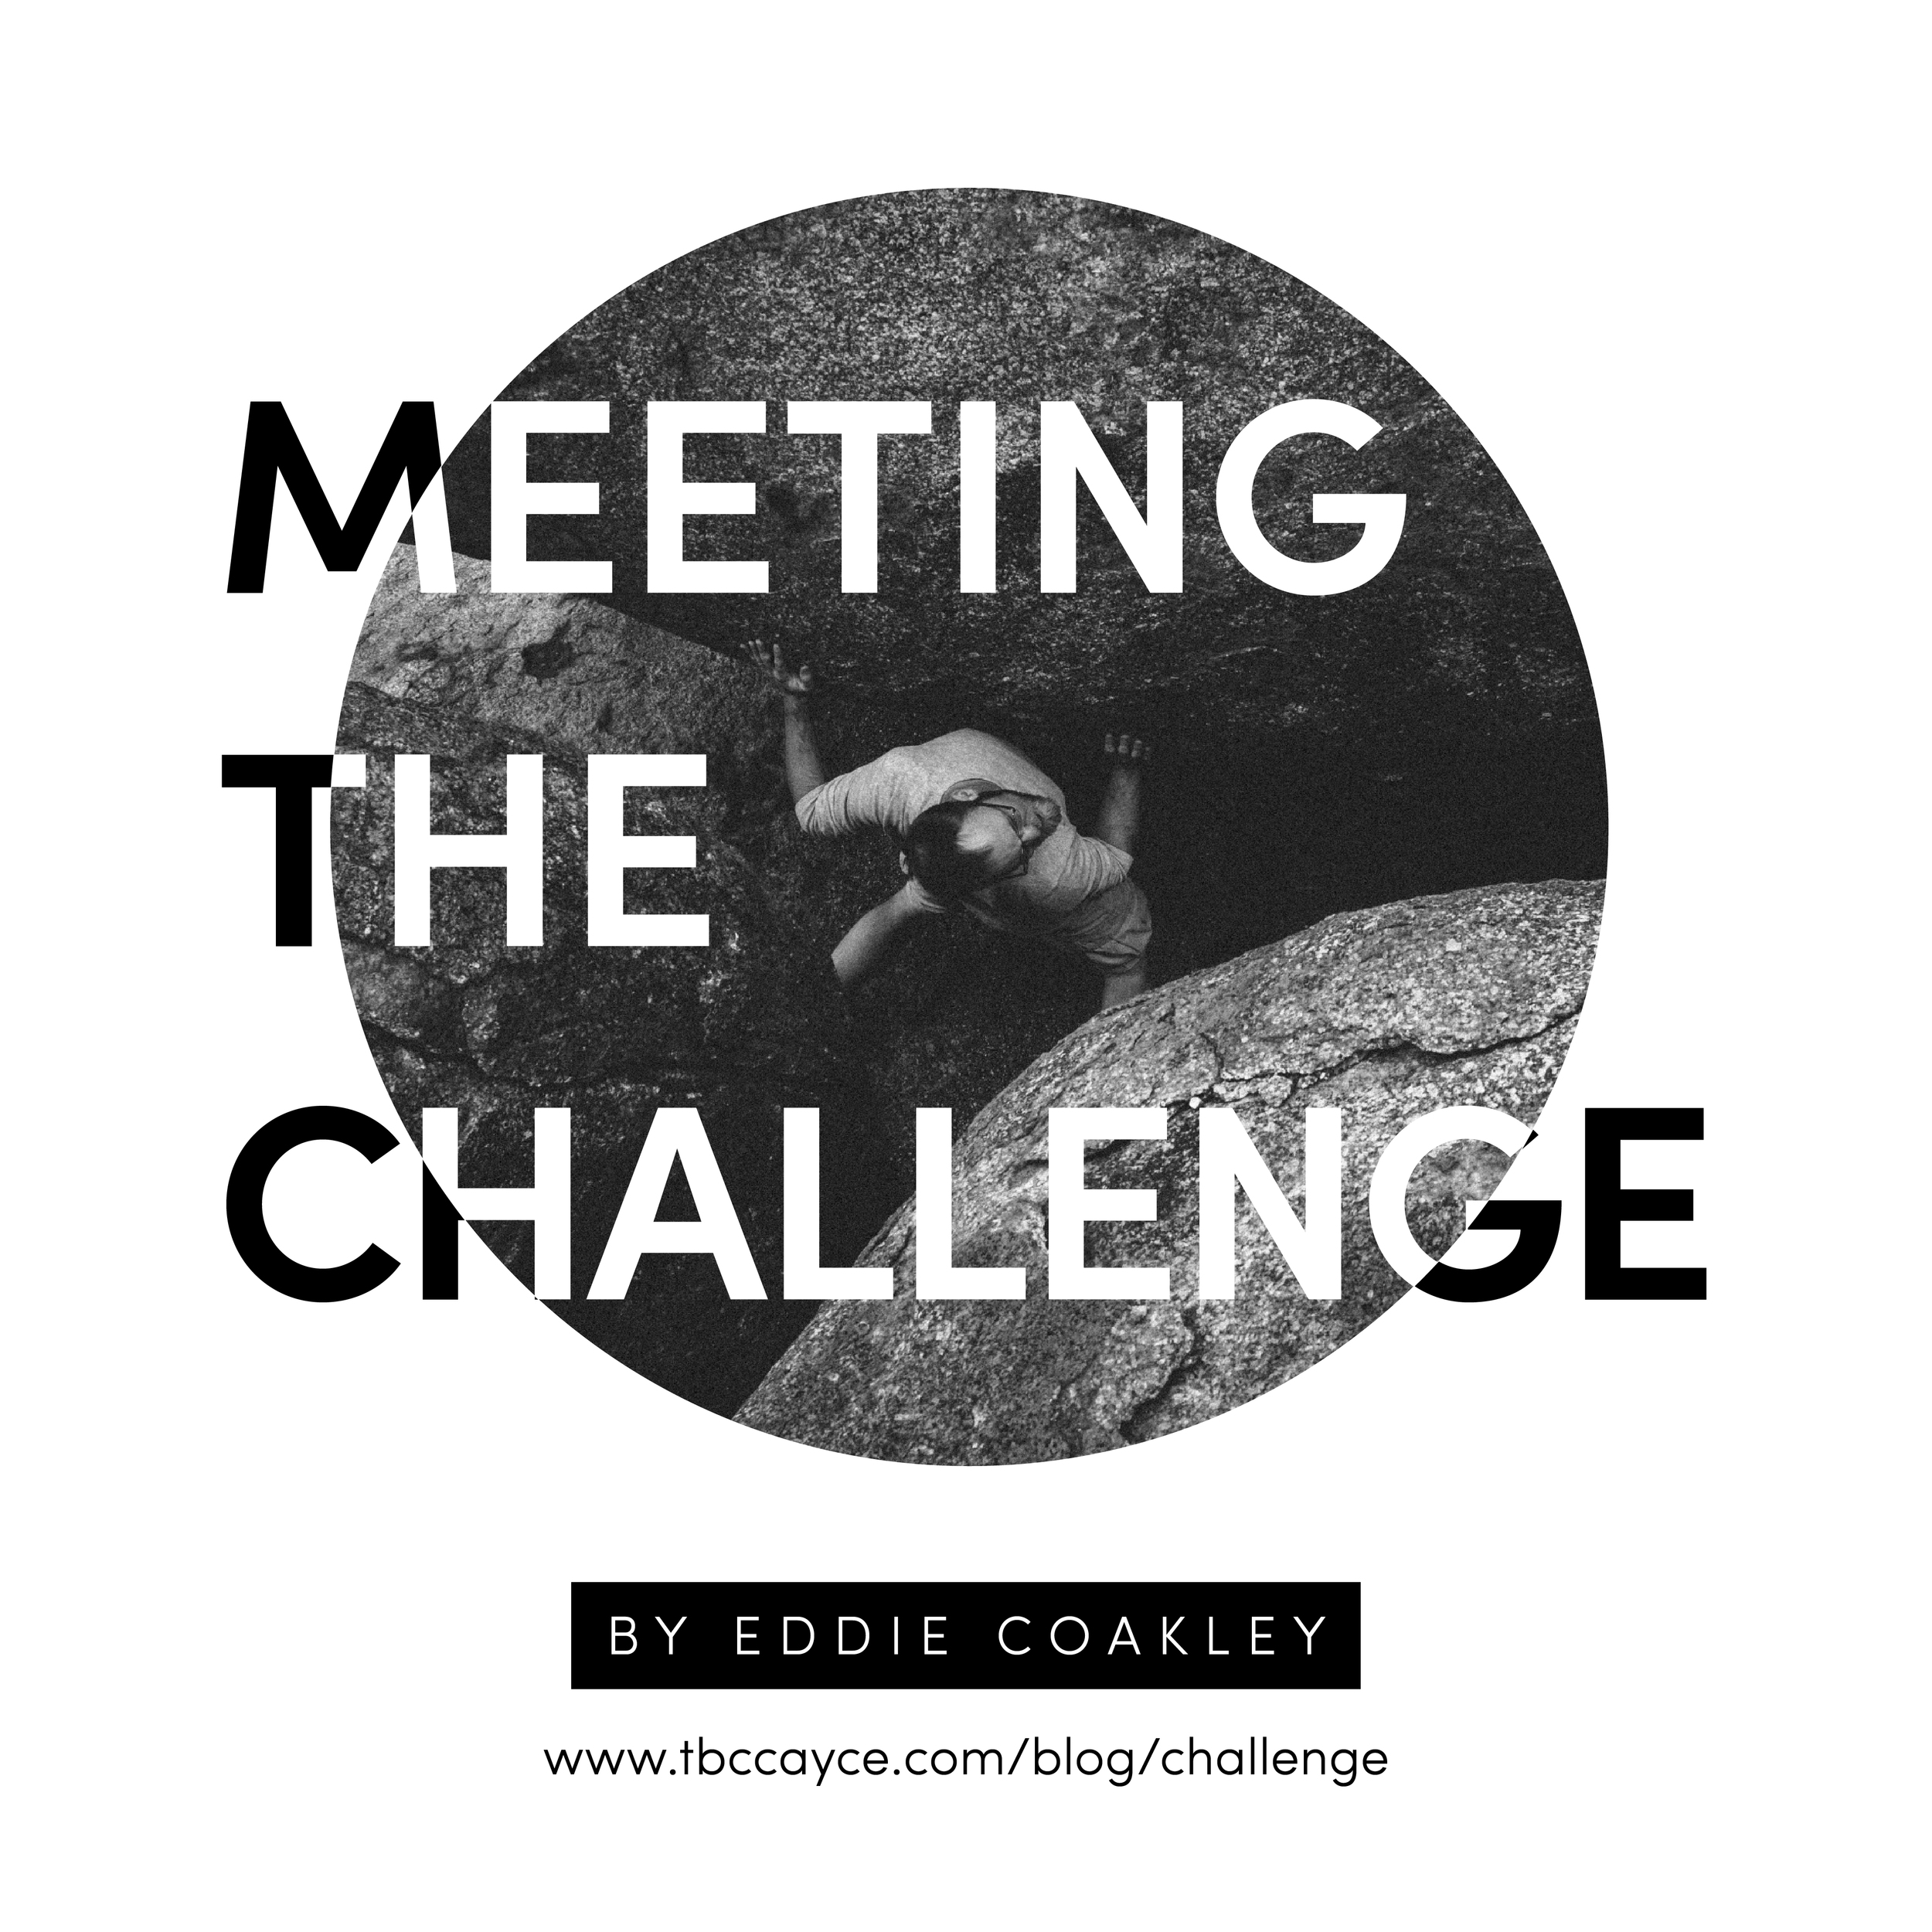 meeting the challenge tbccayce